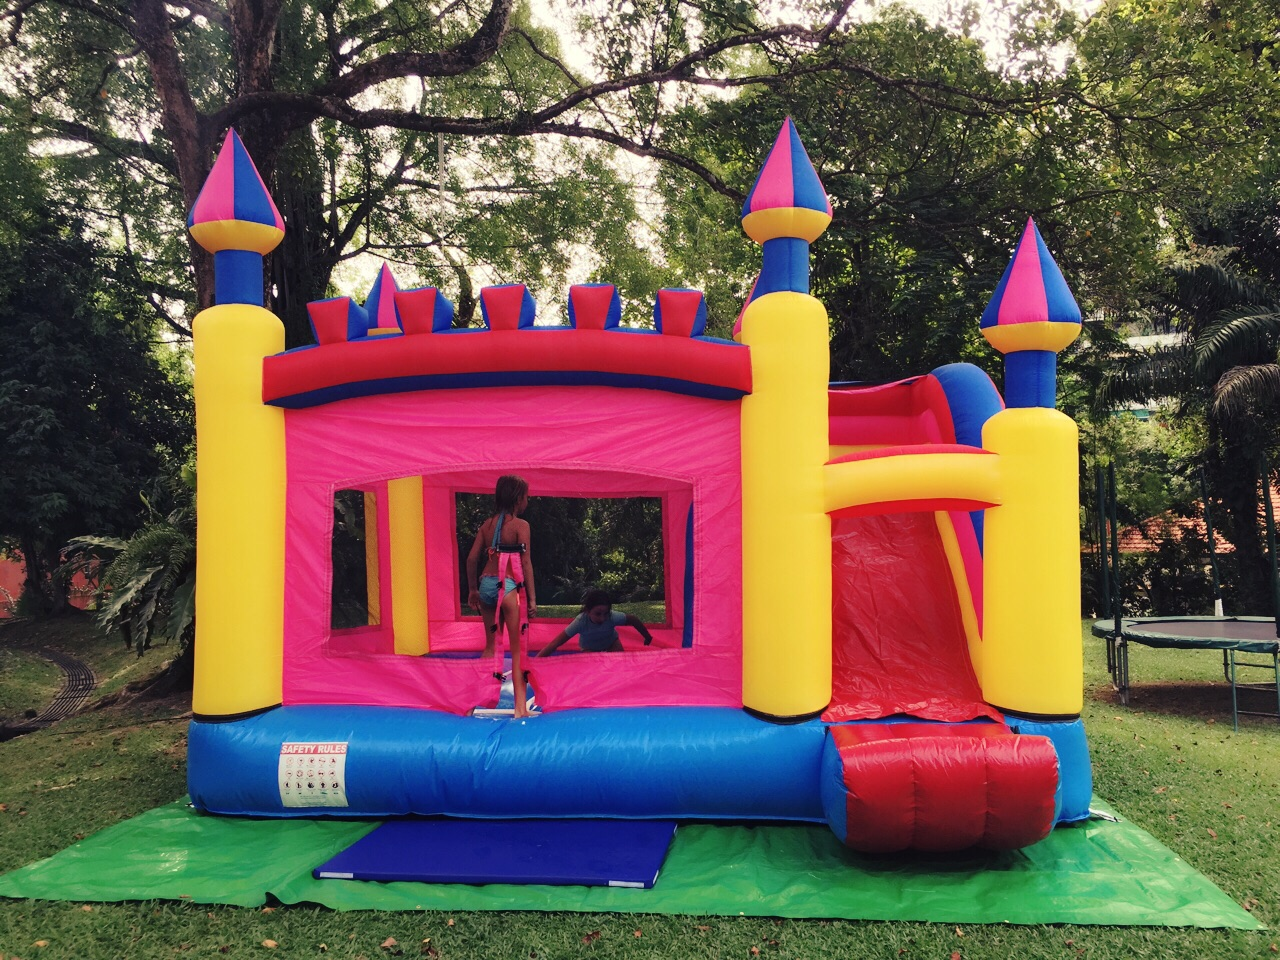 $480 - Dimension: 5m x 4m x 3.5m (H) - Up to 10 Children - Rates for 4 hours session